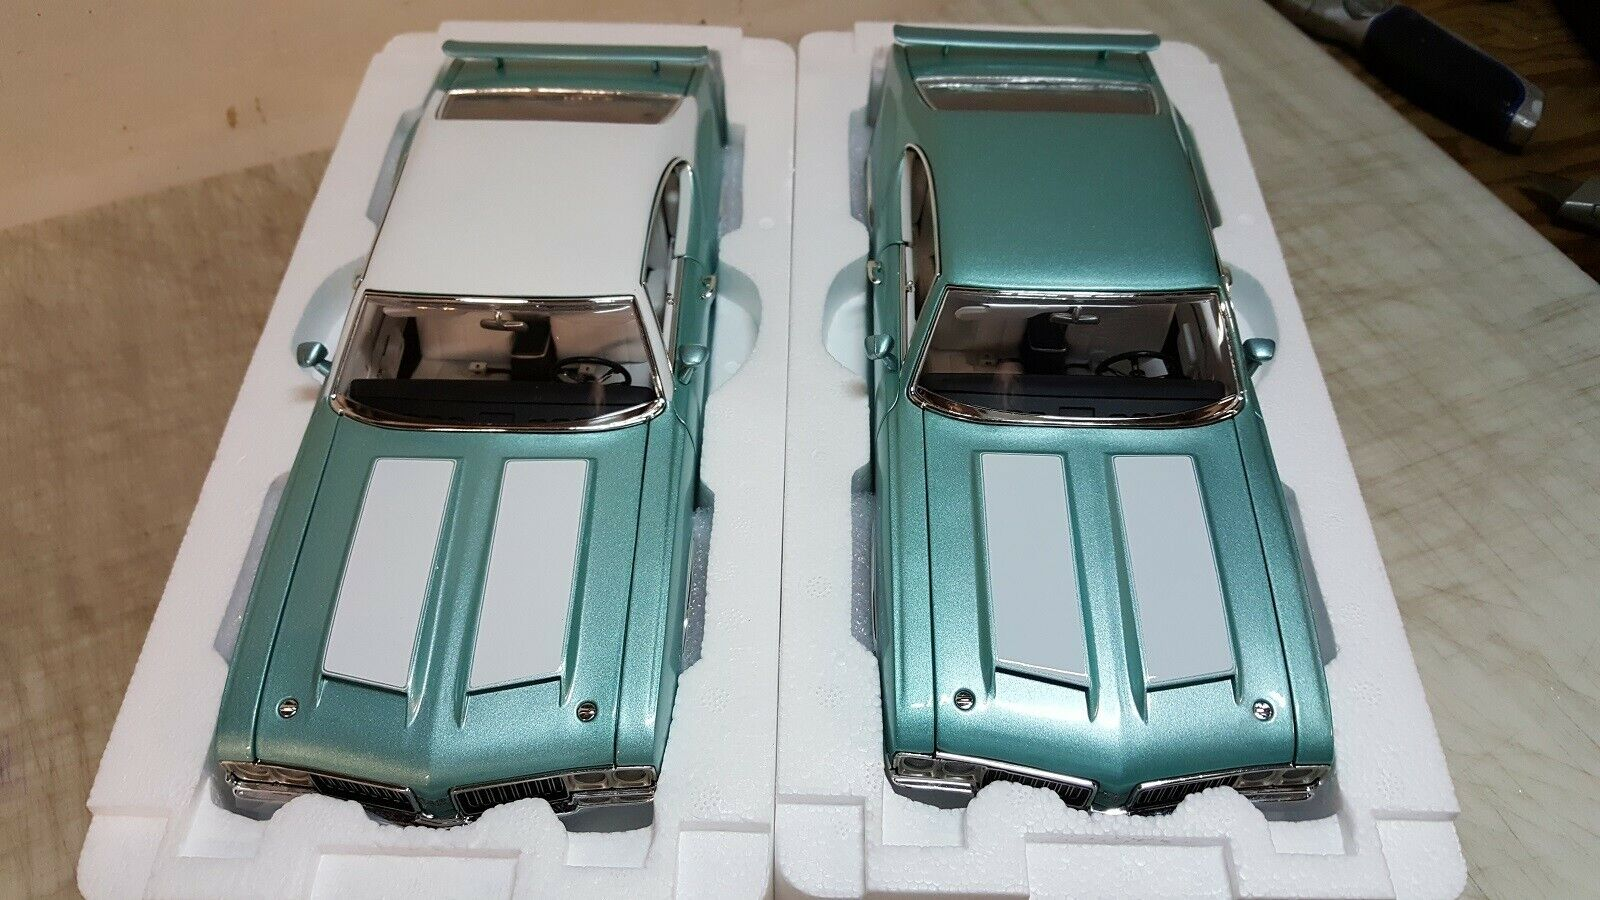 ACME GUYCAST  1 18 1970 OLDSMOBILE 442 W-30 IN TURQUOISE - REGULAR & VINYL TOP